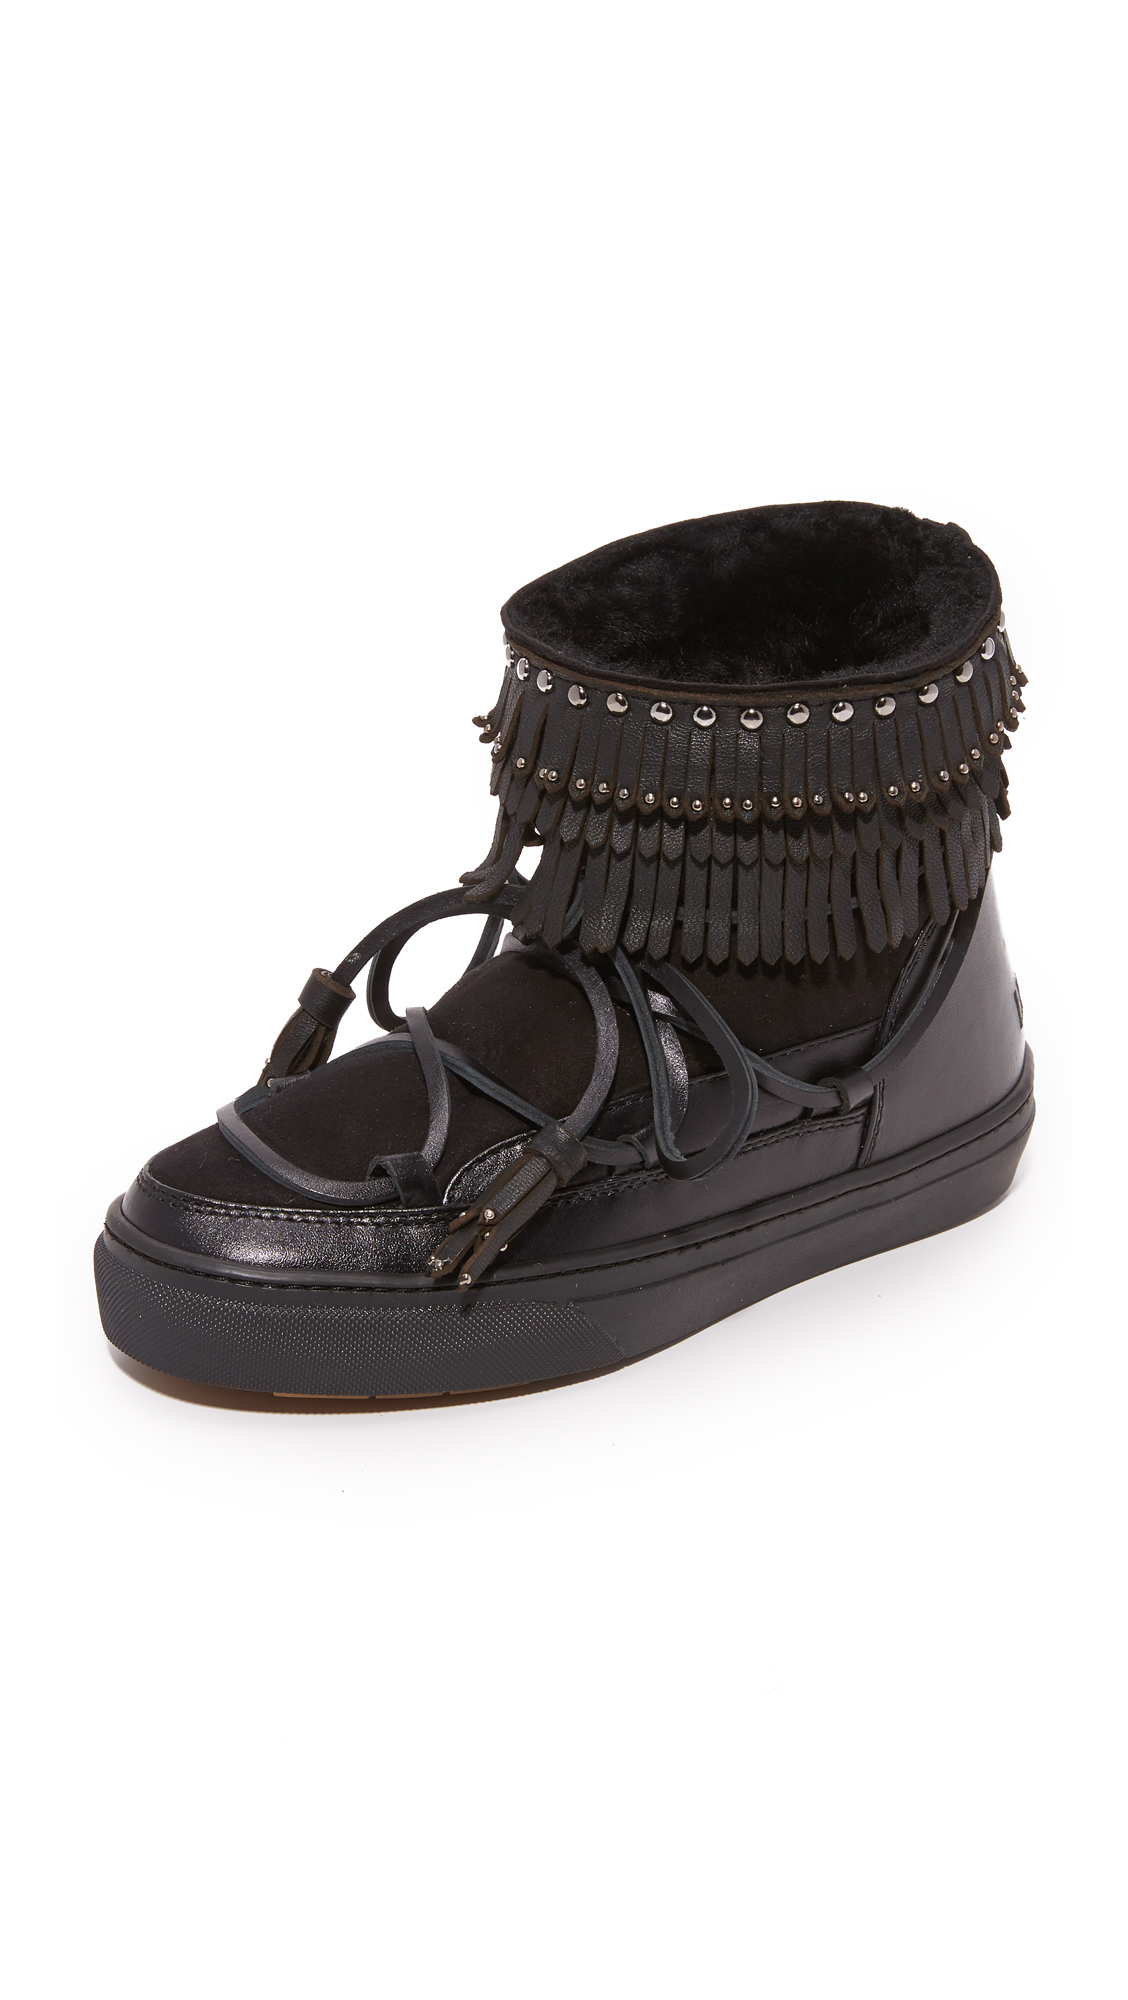 Inuiki Fray Sneaker Booties - Black